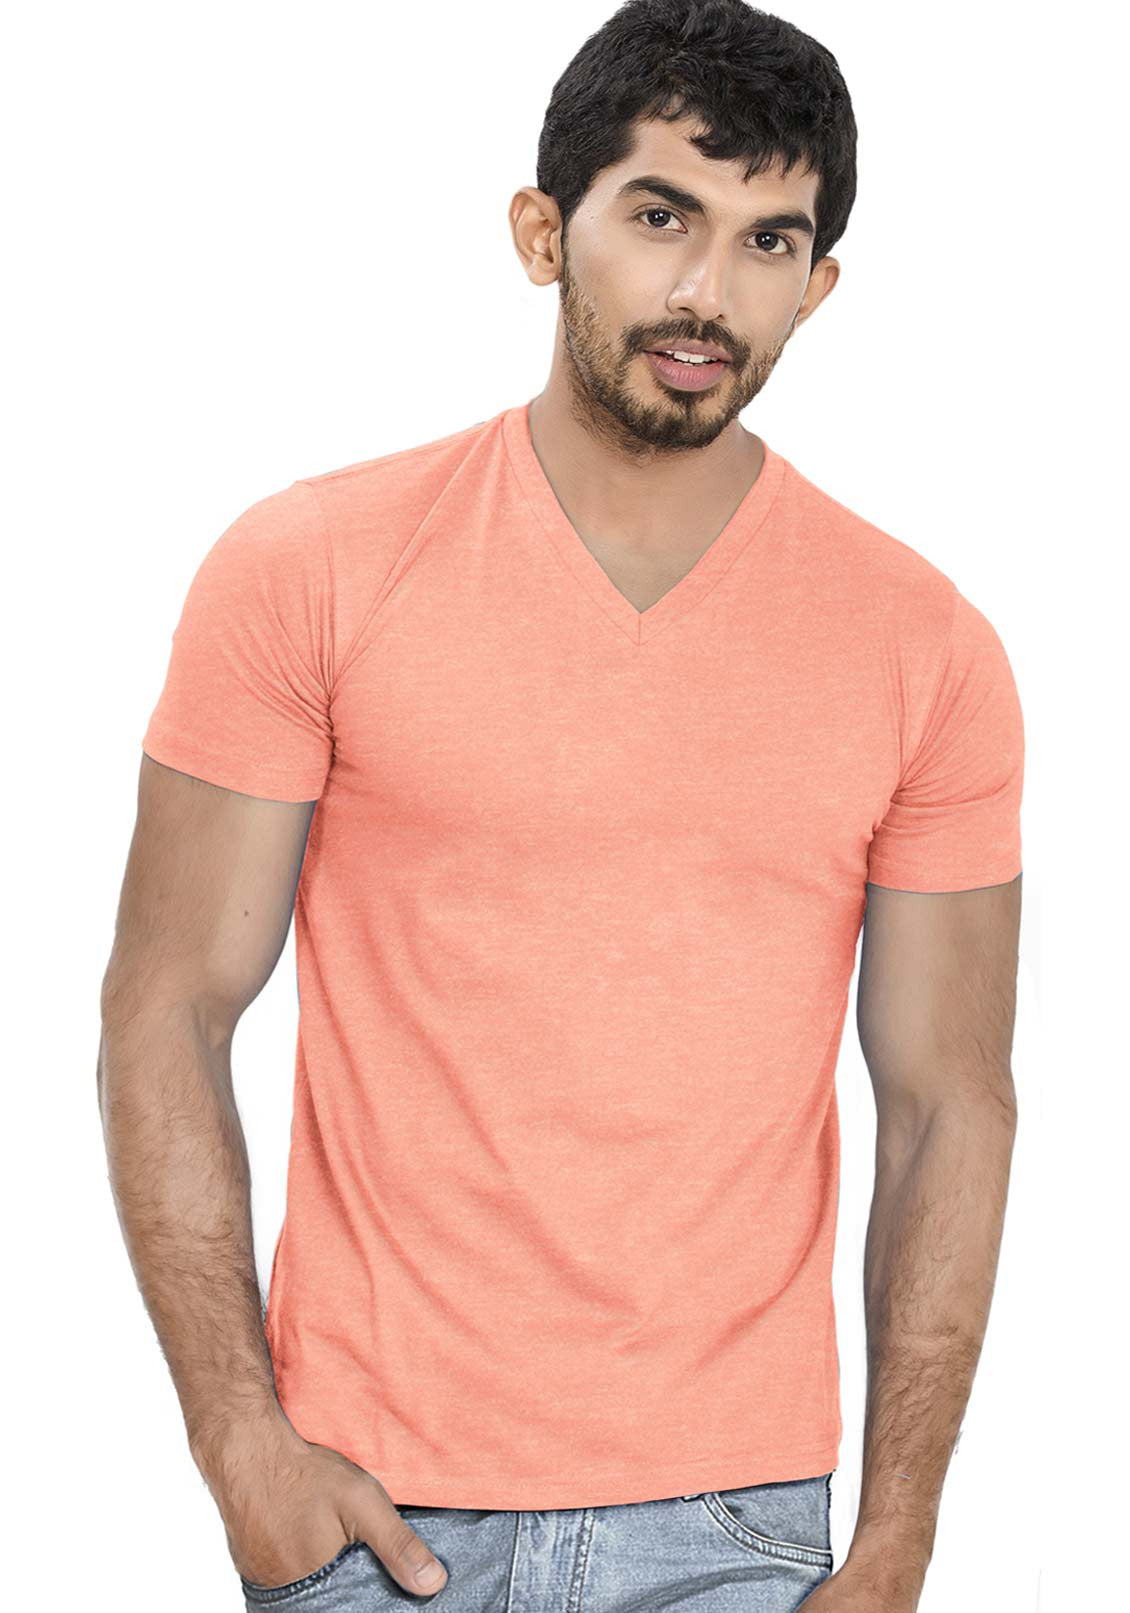 V Neck T Shirt Buy Online India - BCD Tofu House 478910d12